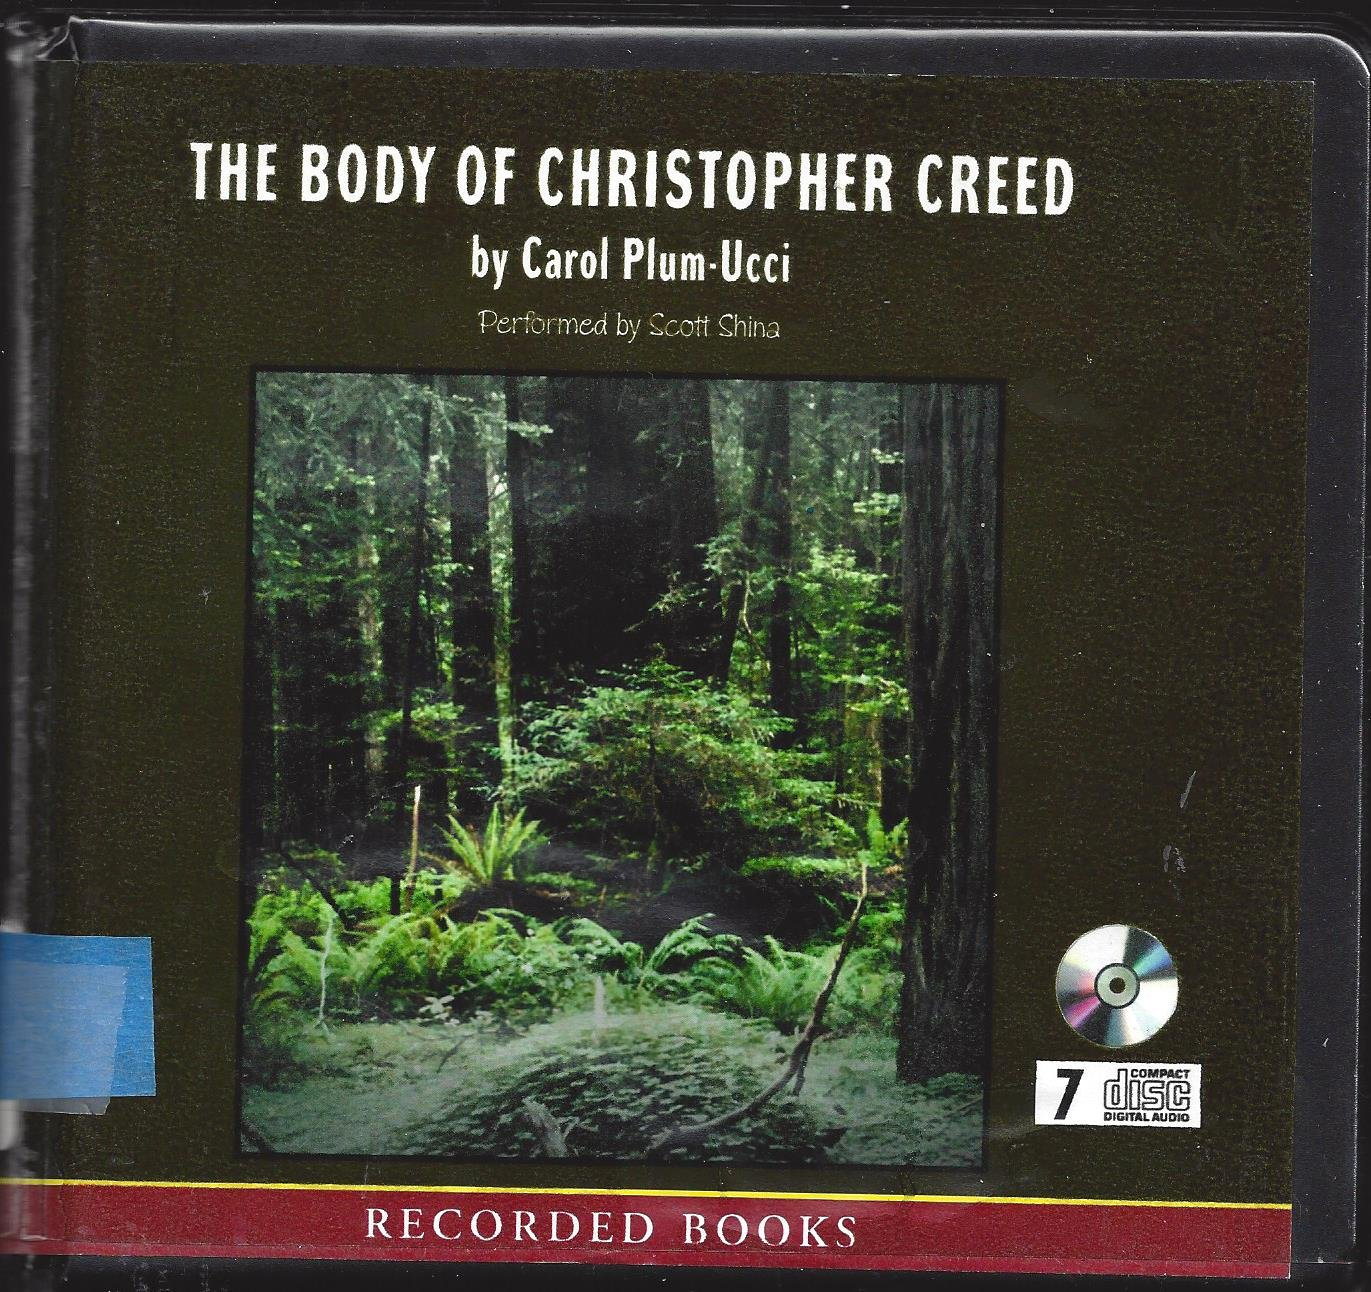 The Body of Christopher Creed: Amazon.es: Carol Plum-Ucci, Scott Shina: Libros en idiomas extranjeros